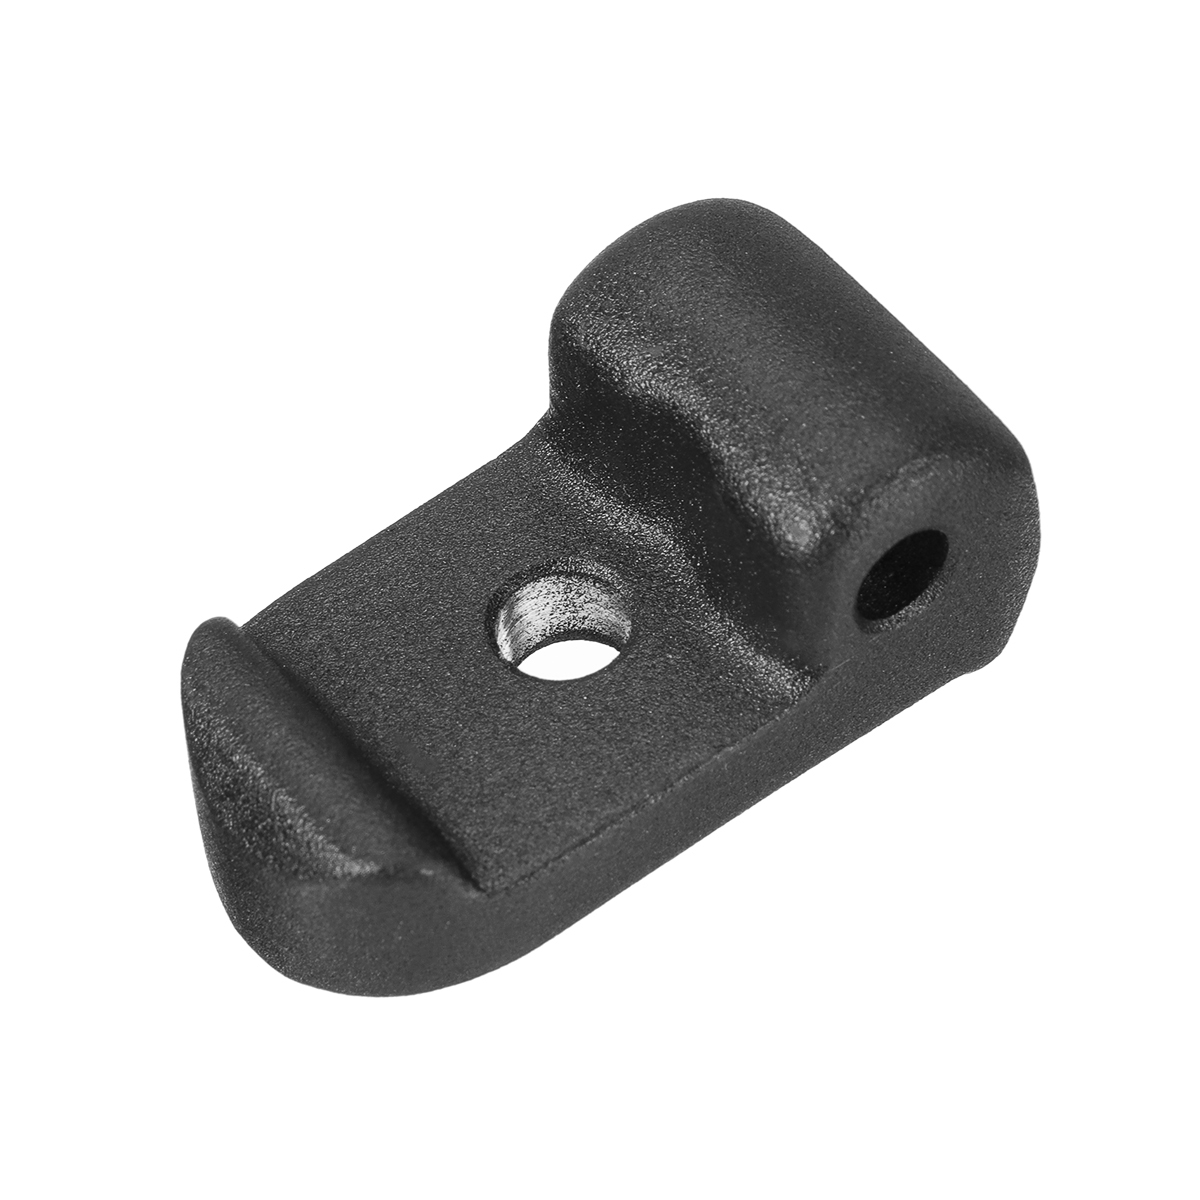 Black Shaft Locking Buckle Replacement Pats For Xiaomi M365 Electric Scooter